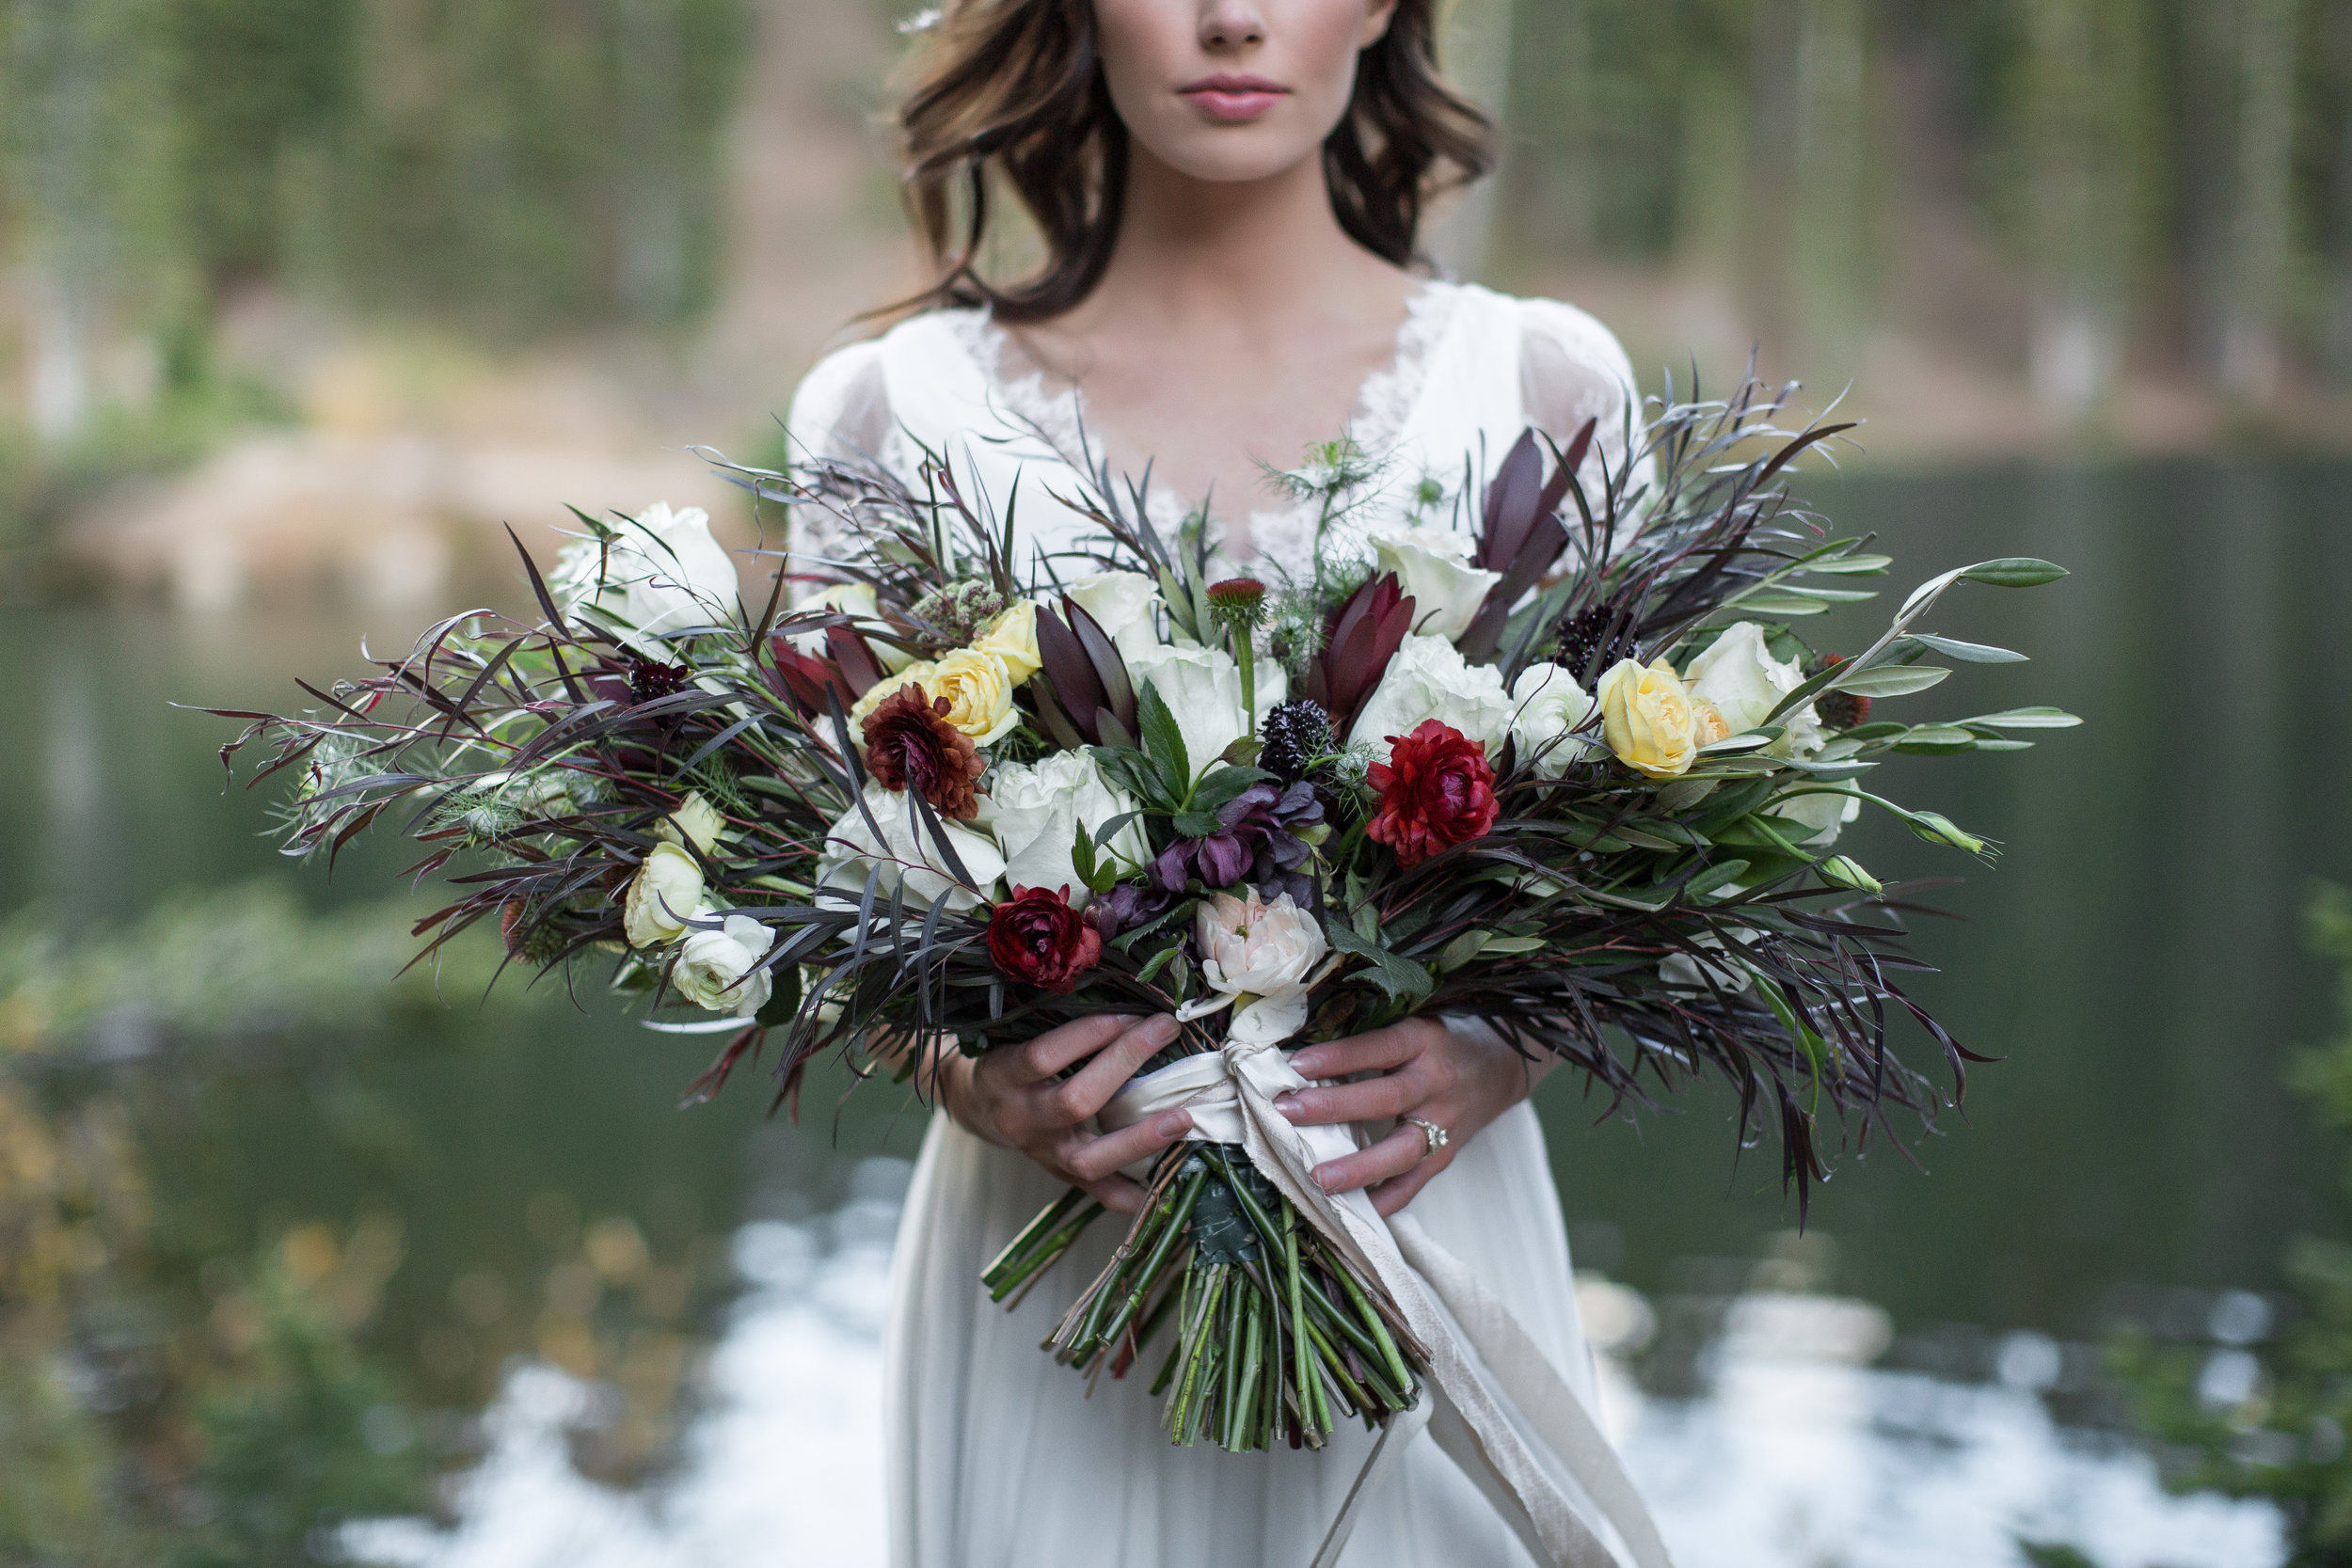 UtahValleyBrideShootTR2016 (51 of 110).jpg